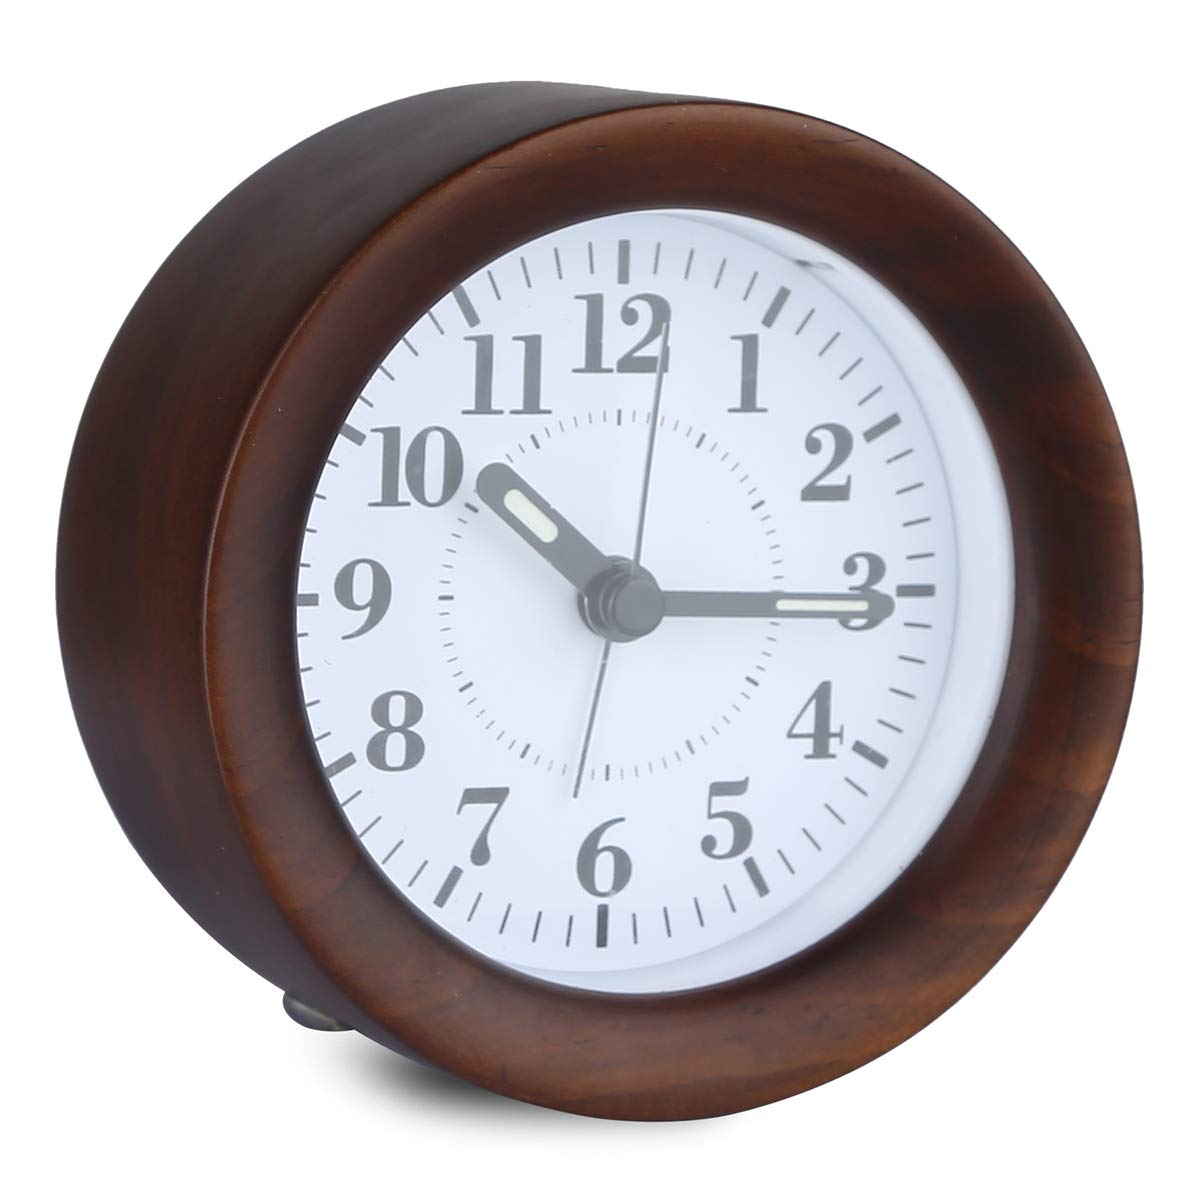 Glovion Genuine Wooden Silent Bedside Basic Clock with Snooze and Light Functions Battery Operated GCZ00017 Gradually Louder Beep Sounds